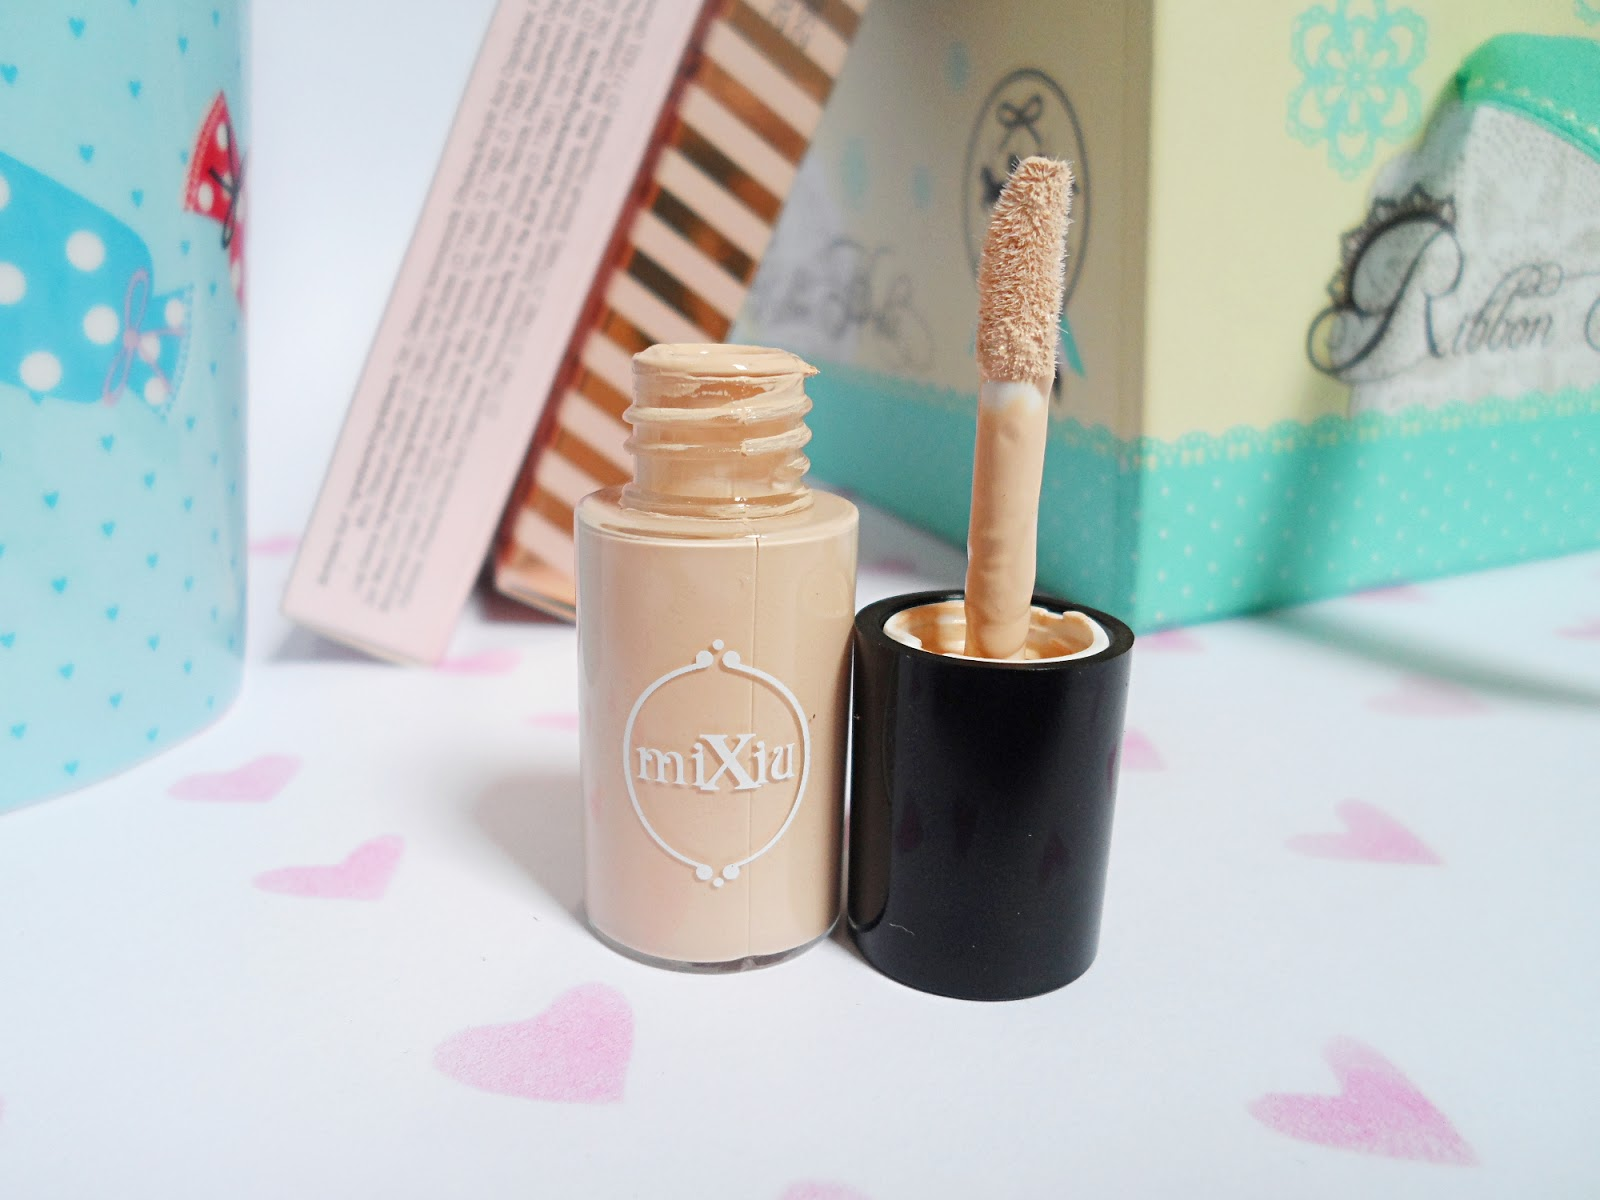 korean asian makeup cosmetics product review blog mixiu makeup concealer review pictures liz breygel